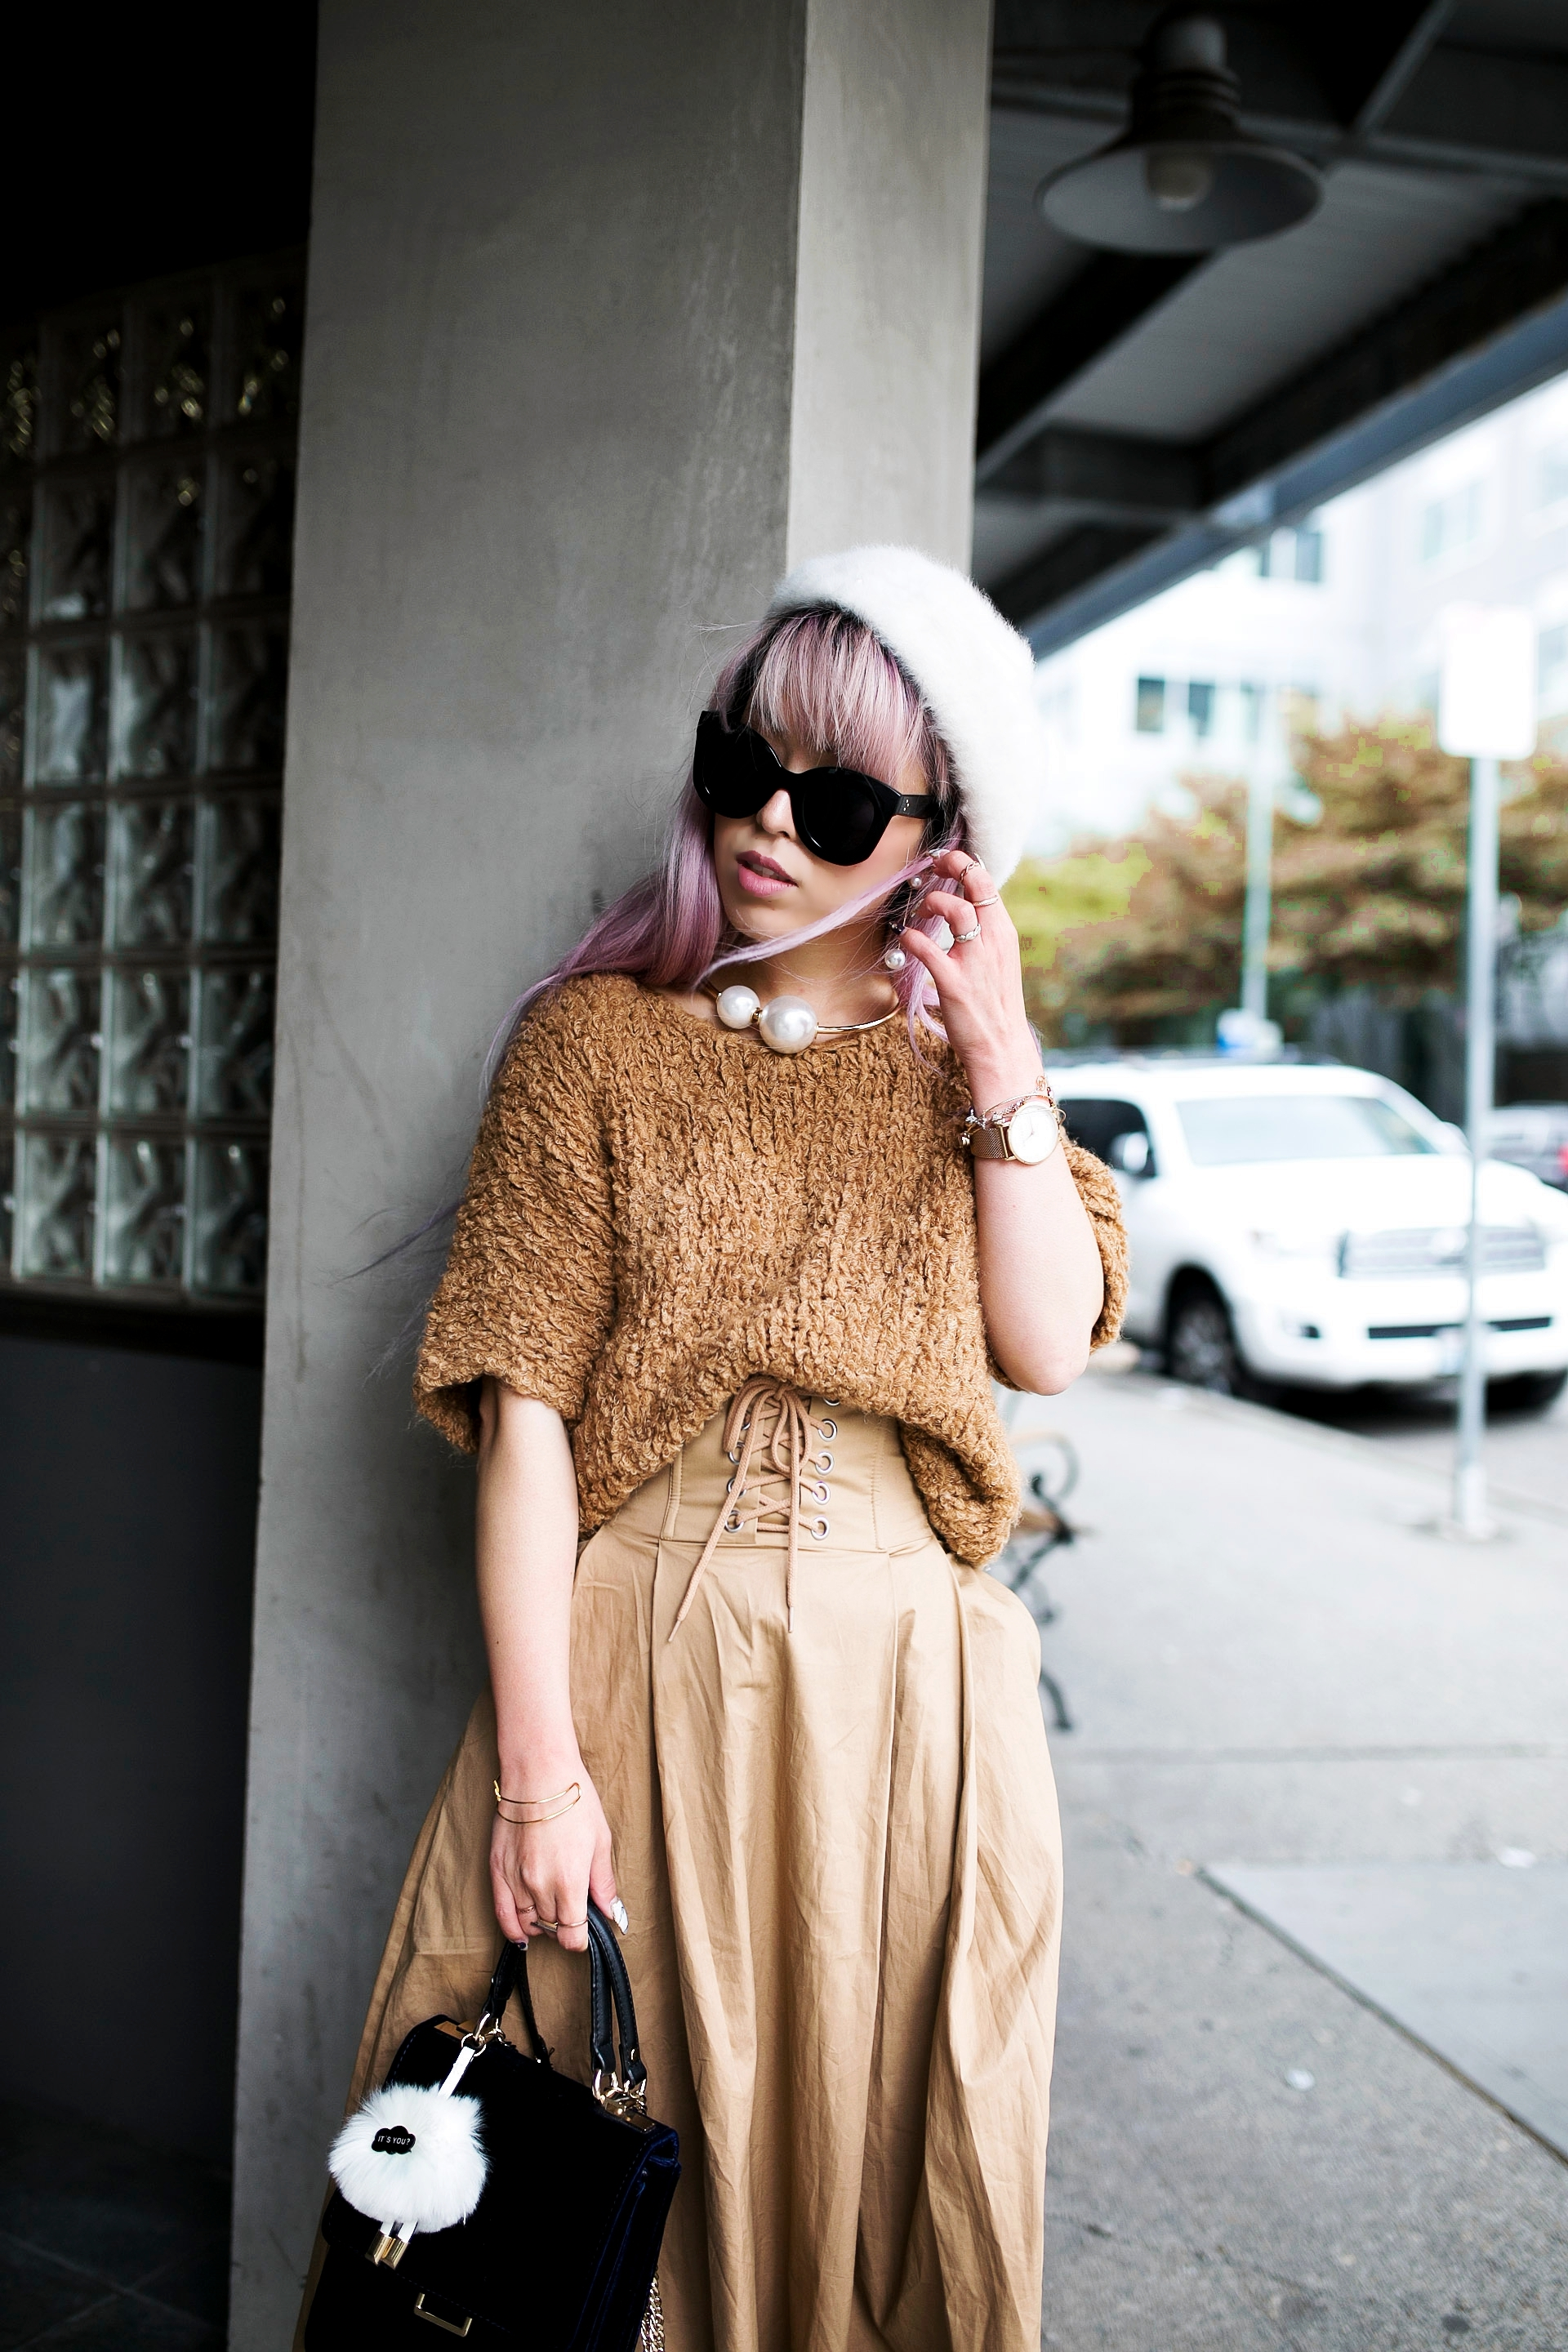 2L6A7828.jpgForever 21 Fluffy White Beret, Express Pearl Collar Necklace, Thrifted Teddy Camel Top, H&M High-waisted camel midi skirt, zara velvet bag, Forever 21 White Ankle Boots, Aika's Love Closet, Seattle Fashion Style Blogger, Japanese, pink hair, street style, petite fashion  8